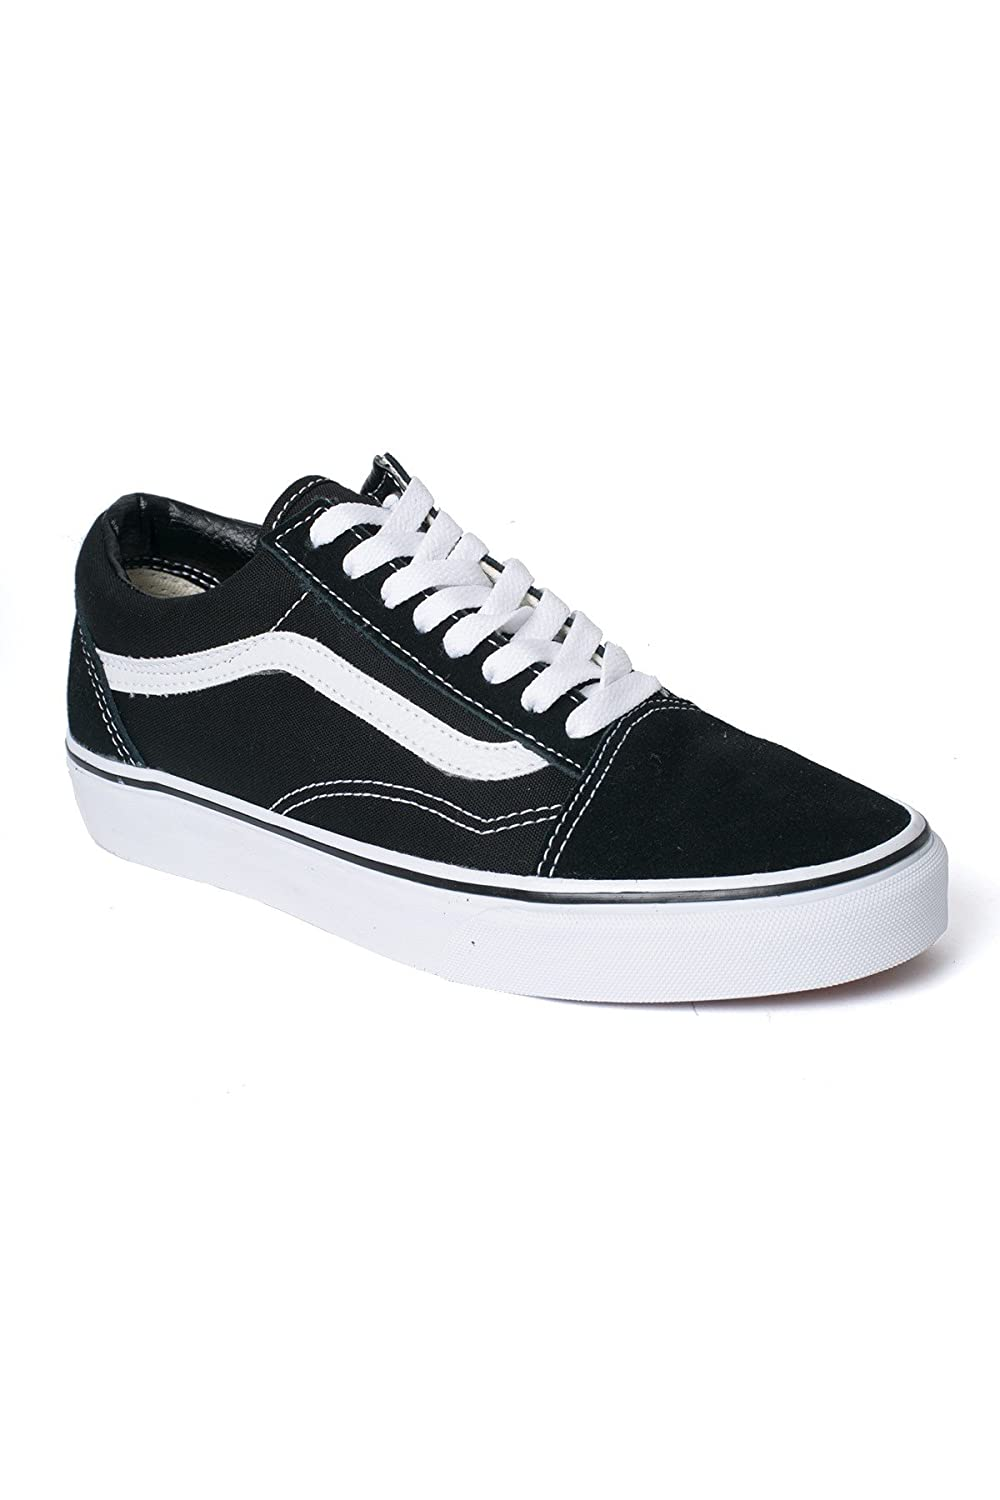 Vans Unisex Old Skool Classic Skate Shoes B076YPVFZZ 12 M US Women / 10.5 M US Men|Black (Black/White)